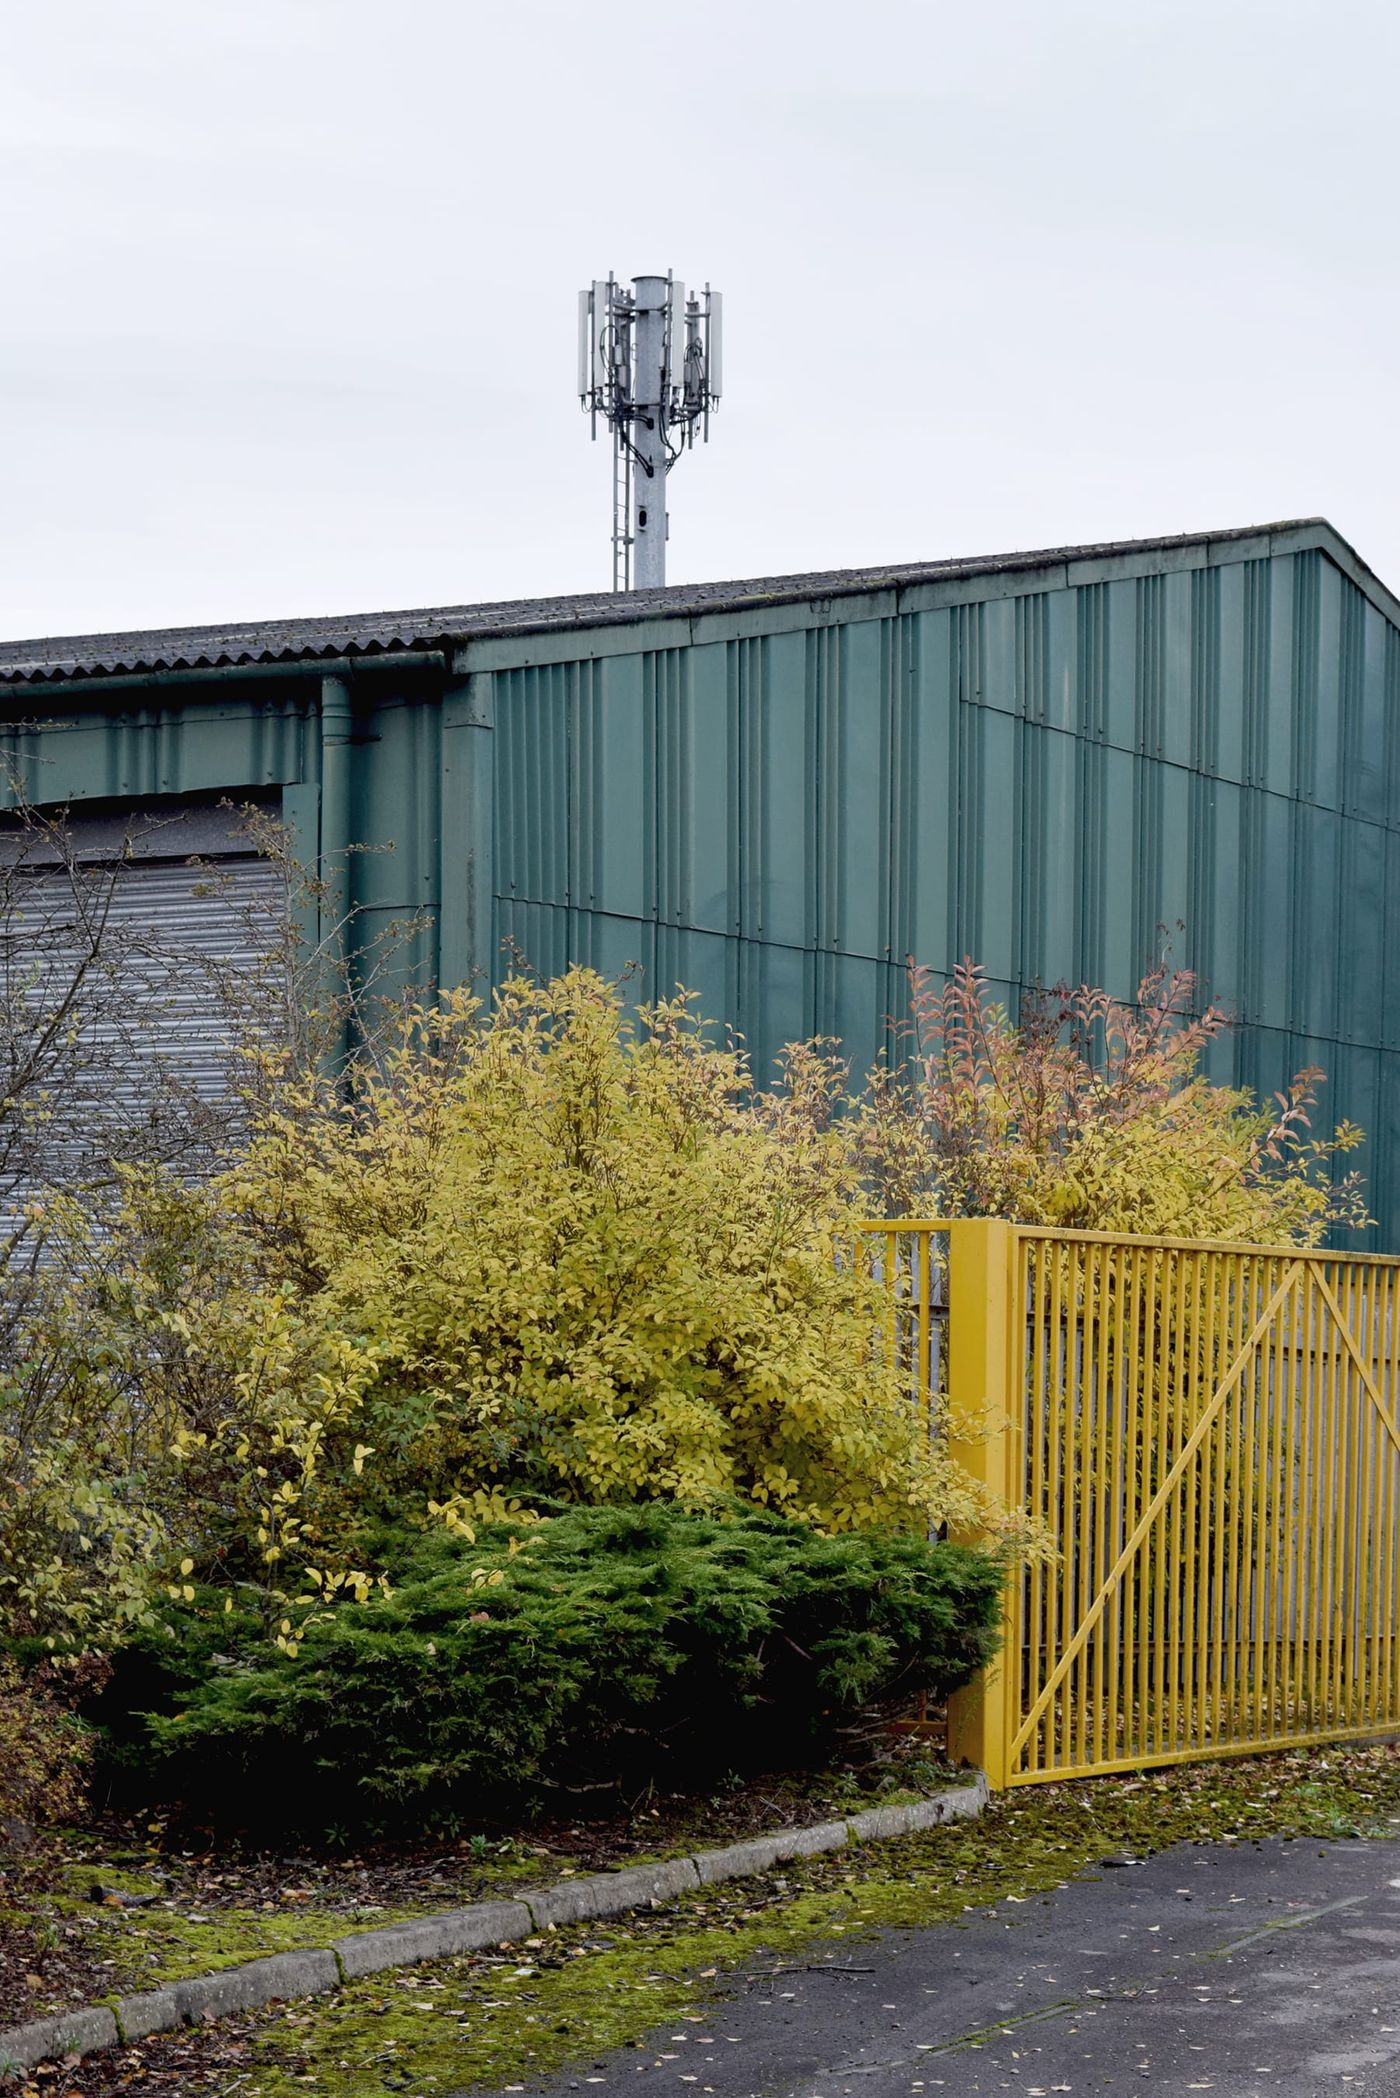 Photograph of a green industrial warehouse on Claylands Avenue, Worksop.